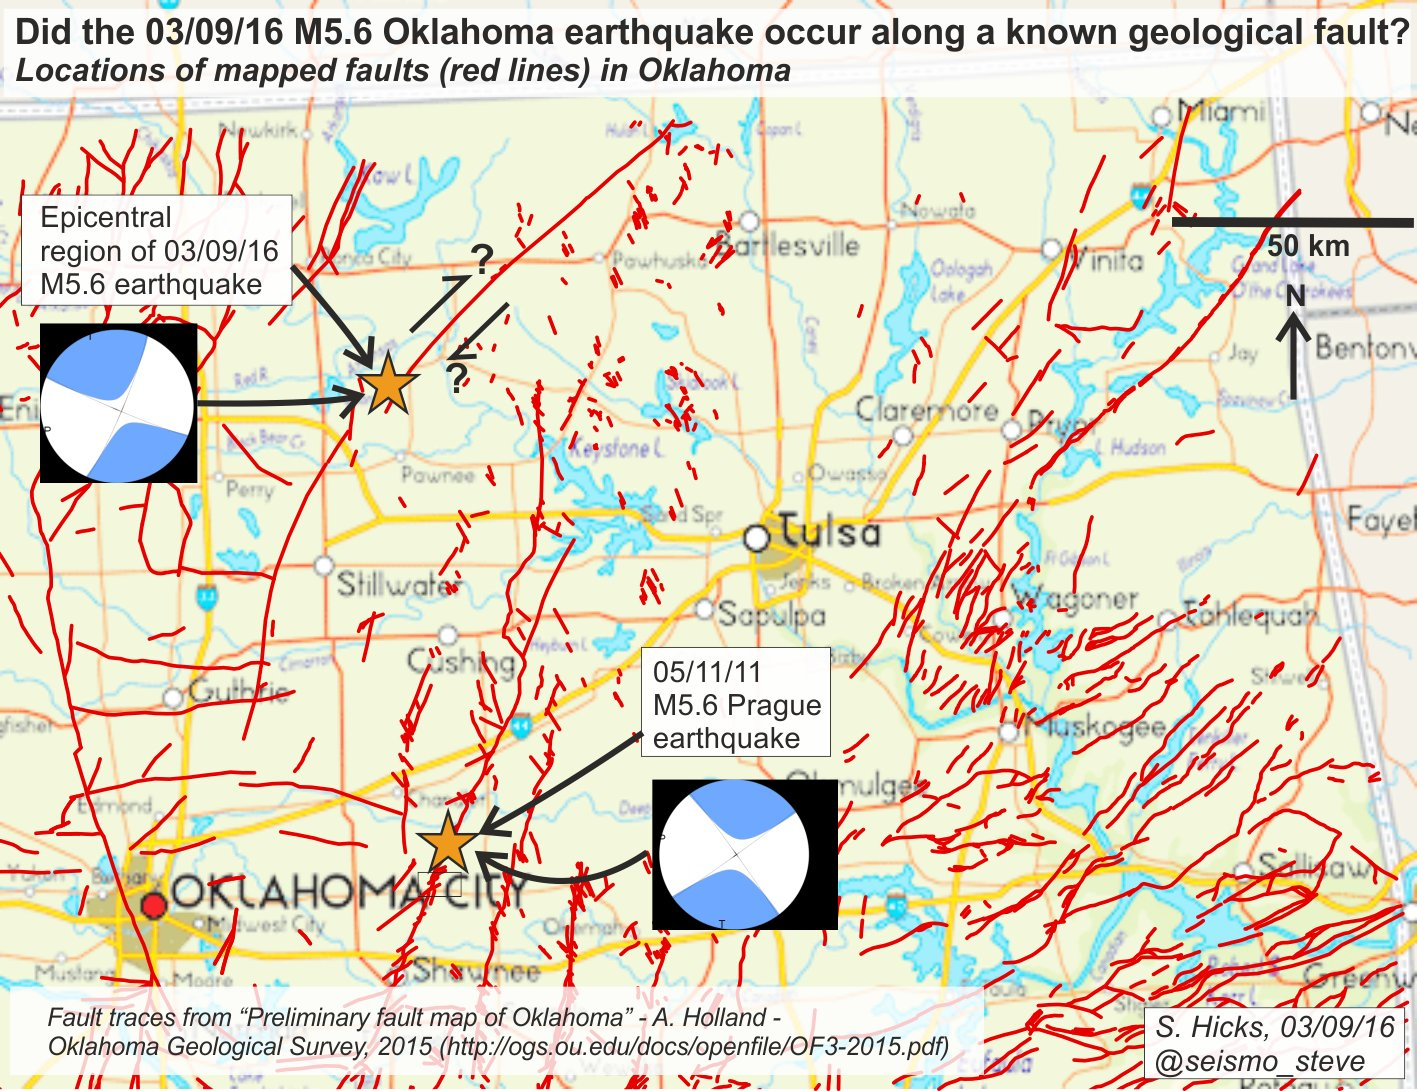 earthquake patterns across the united states United states has had: (m15 or greater) 39 earthquakes in the past 24 hours 514 earthquakes in the past 7 days 1,776 earthquakes in the past 30 days.